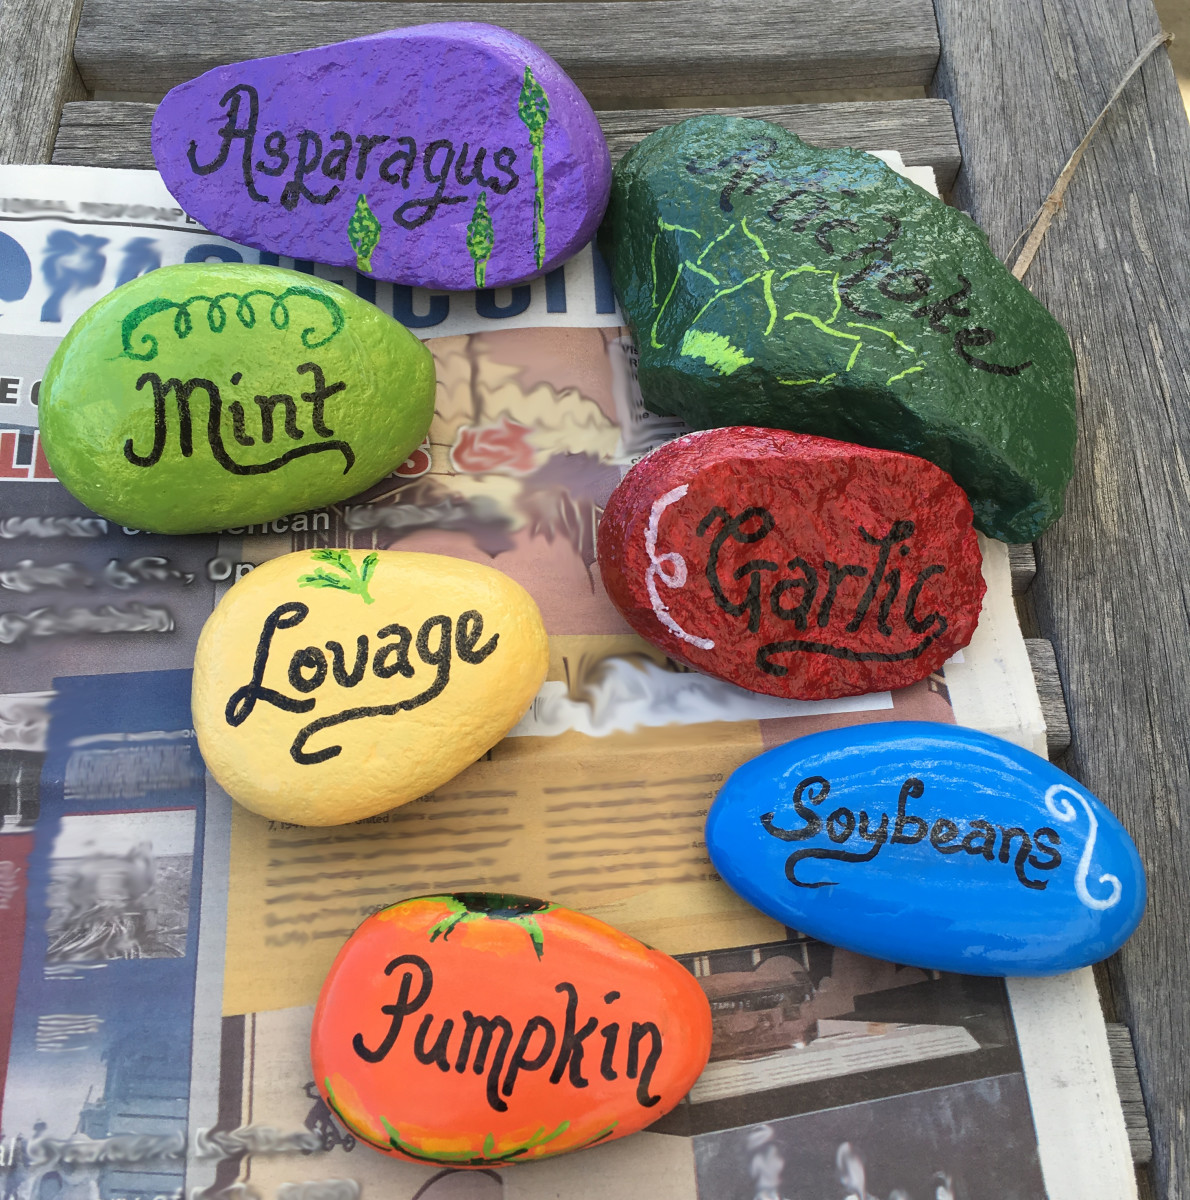 Painted stone garden markers for the vegetable garden.